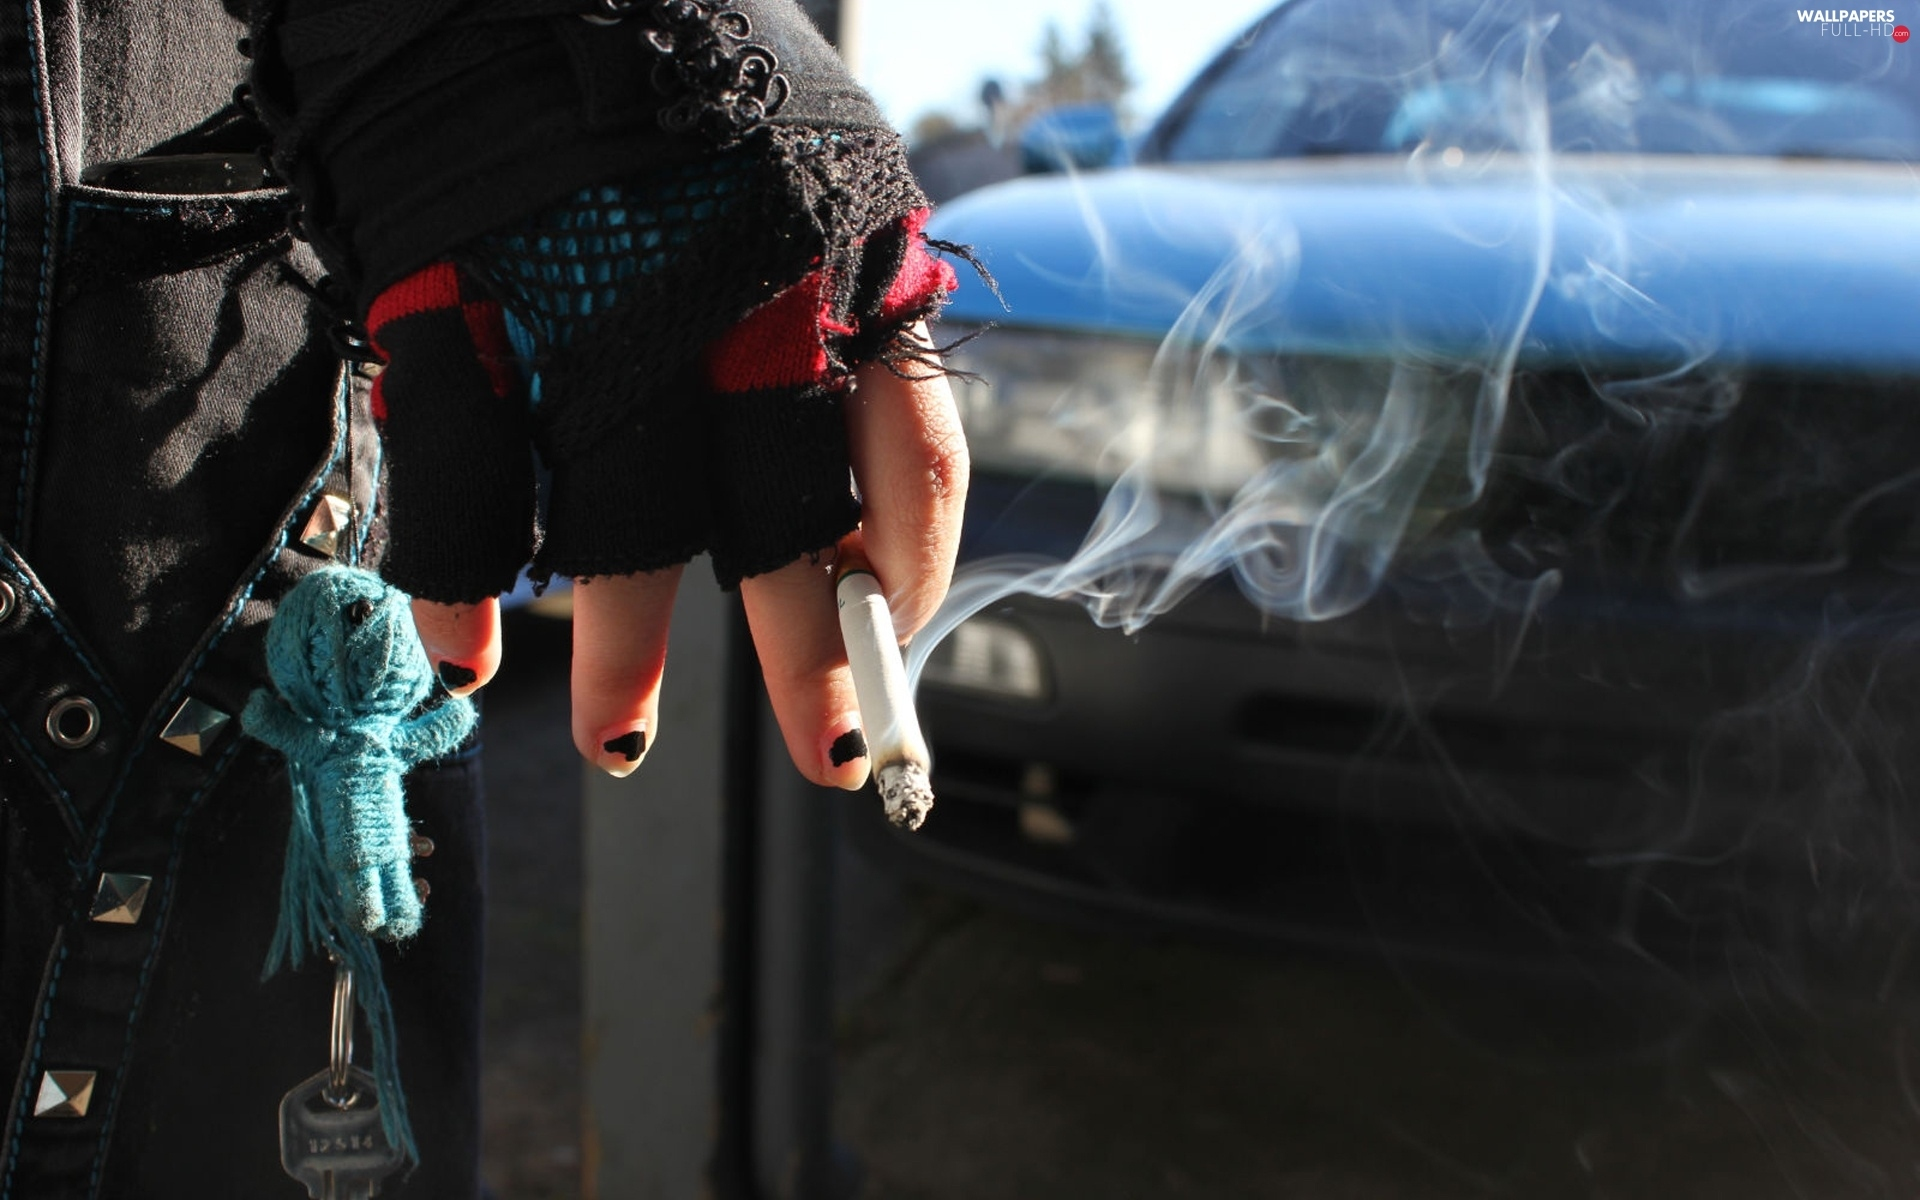 Cigarette, Automobile, hand